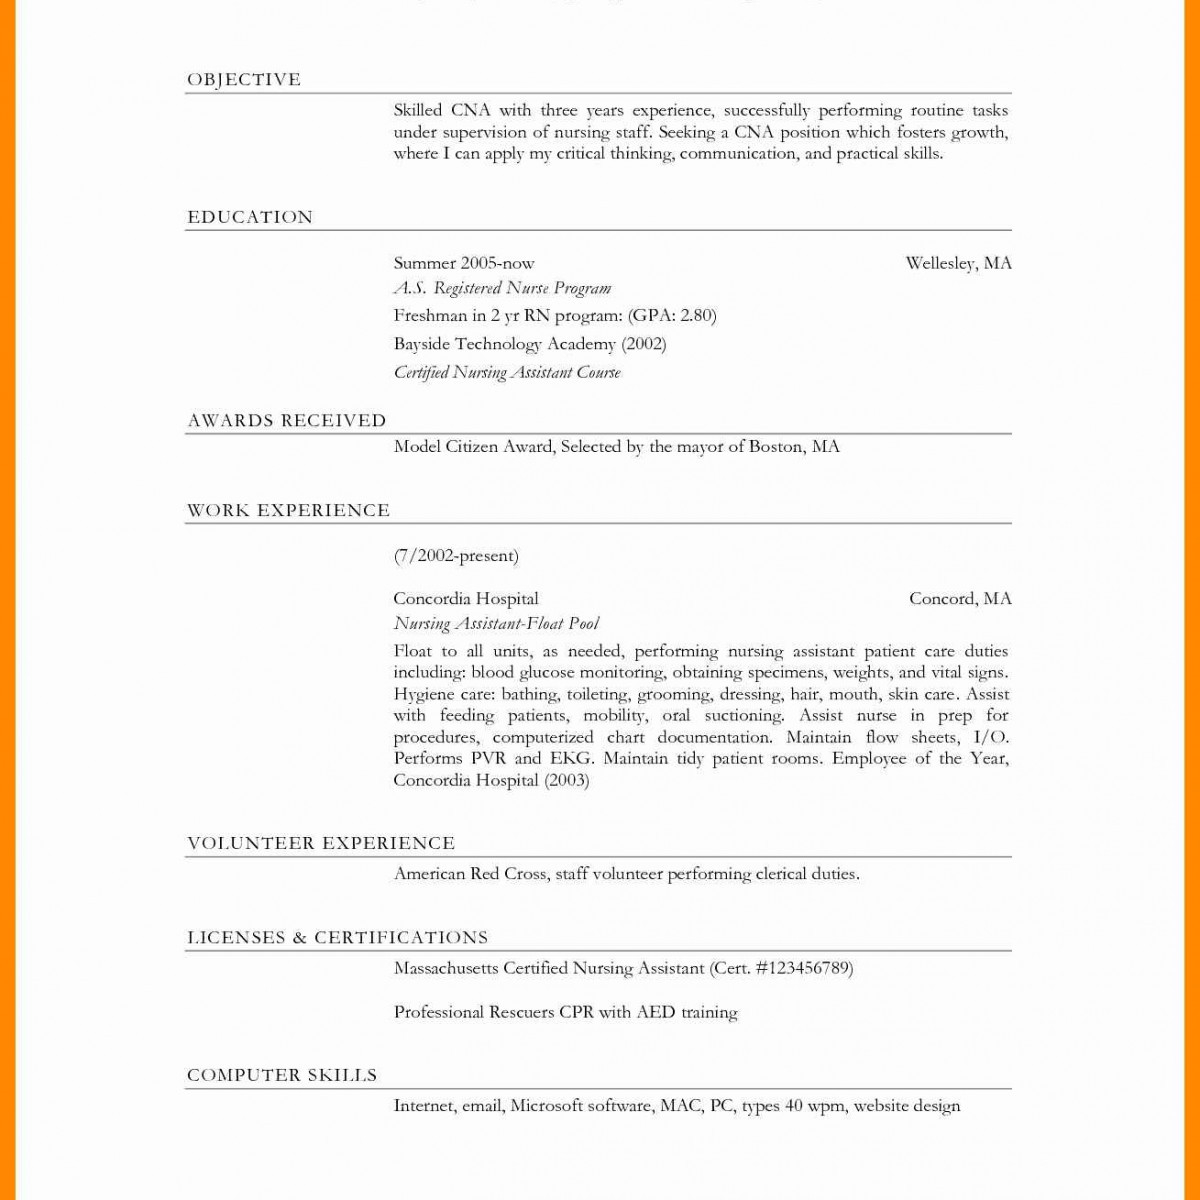 Clerical Resume Template - Python Resume Charming Outdoor Resume Template Elegant Resume